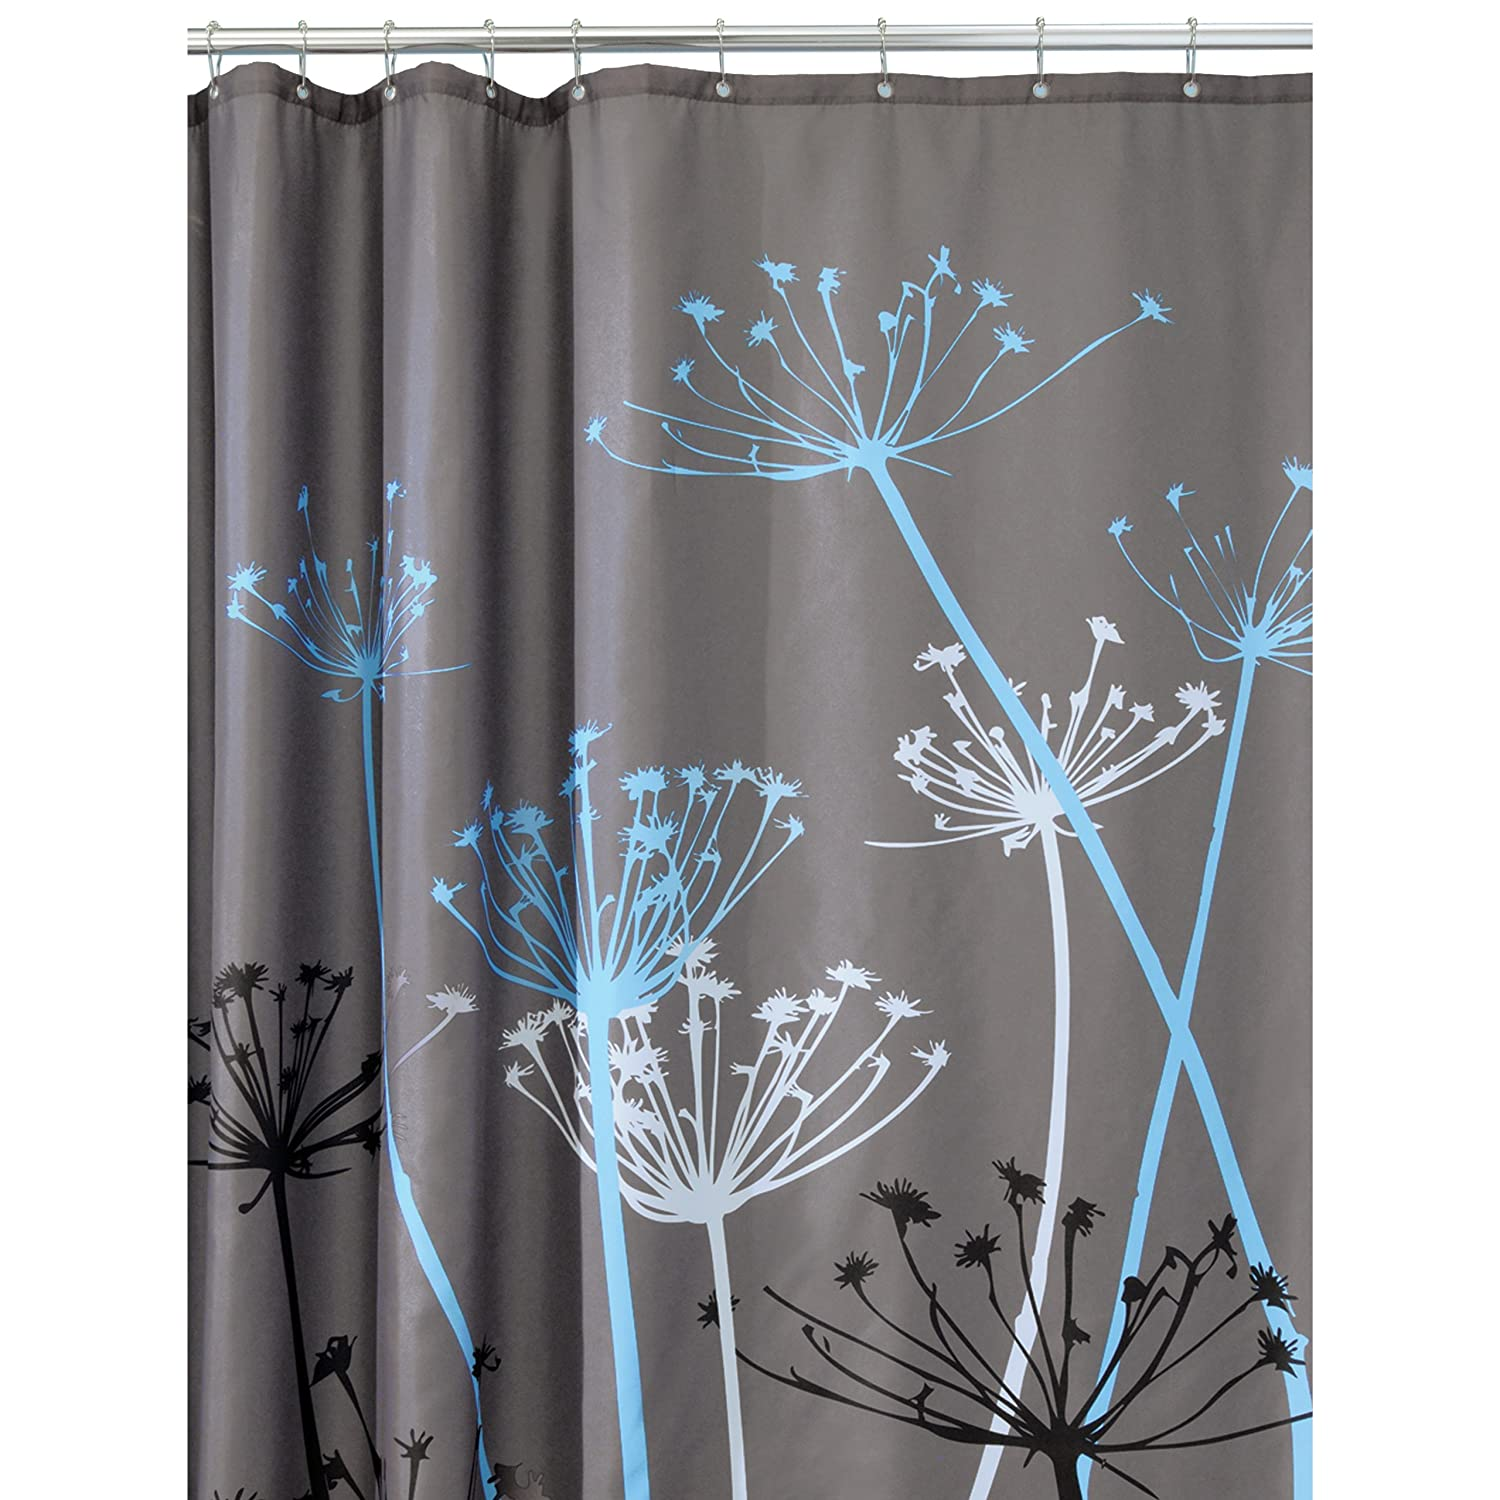 Amazon.com: Shower Curtains, Hooks & Liners: Home & Kitchen